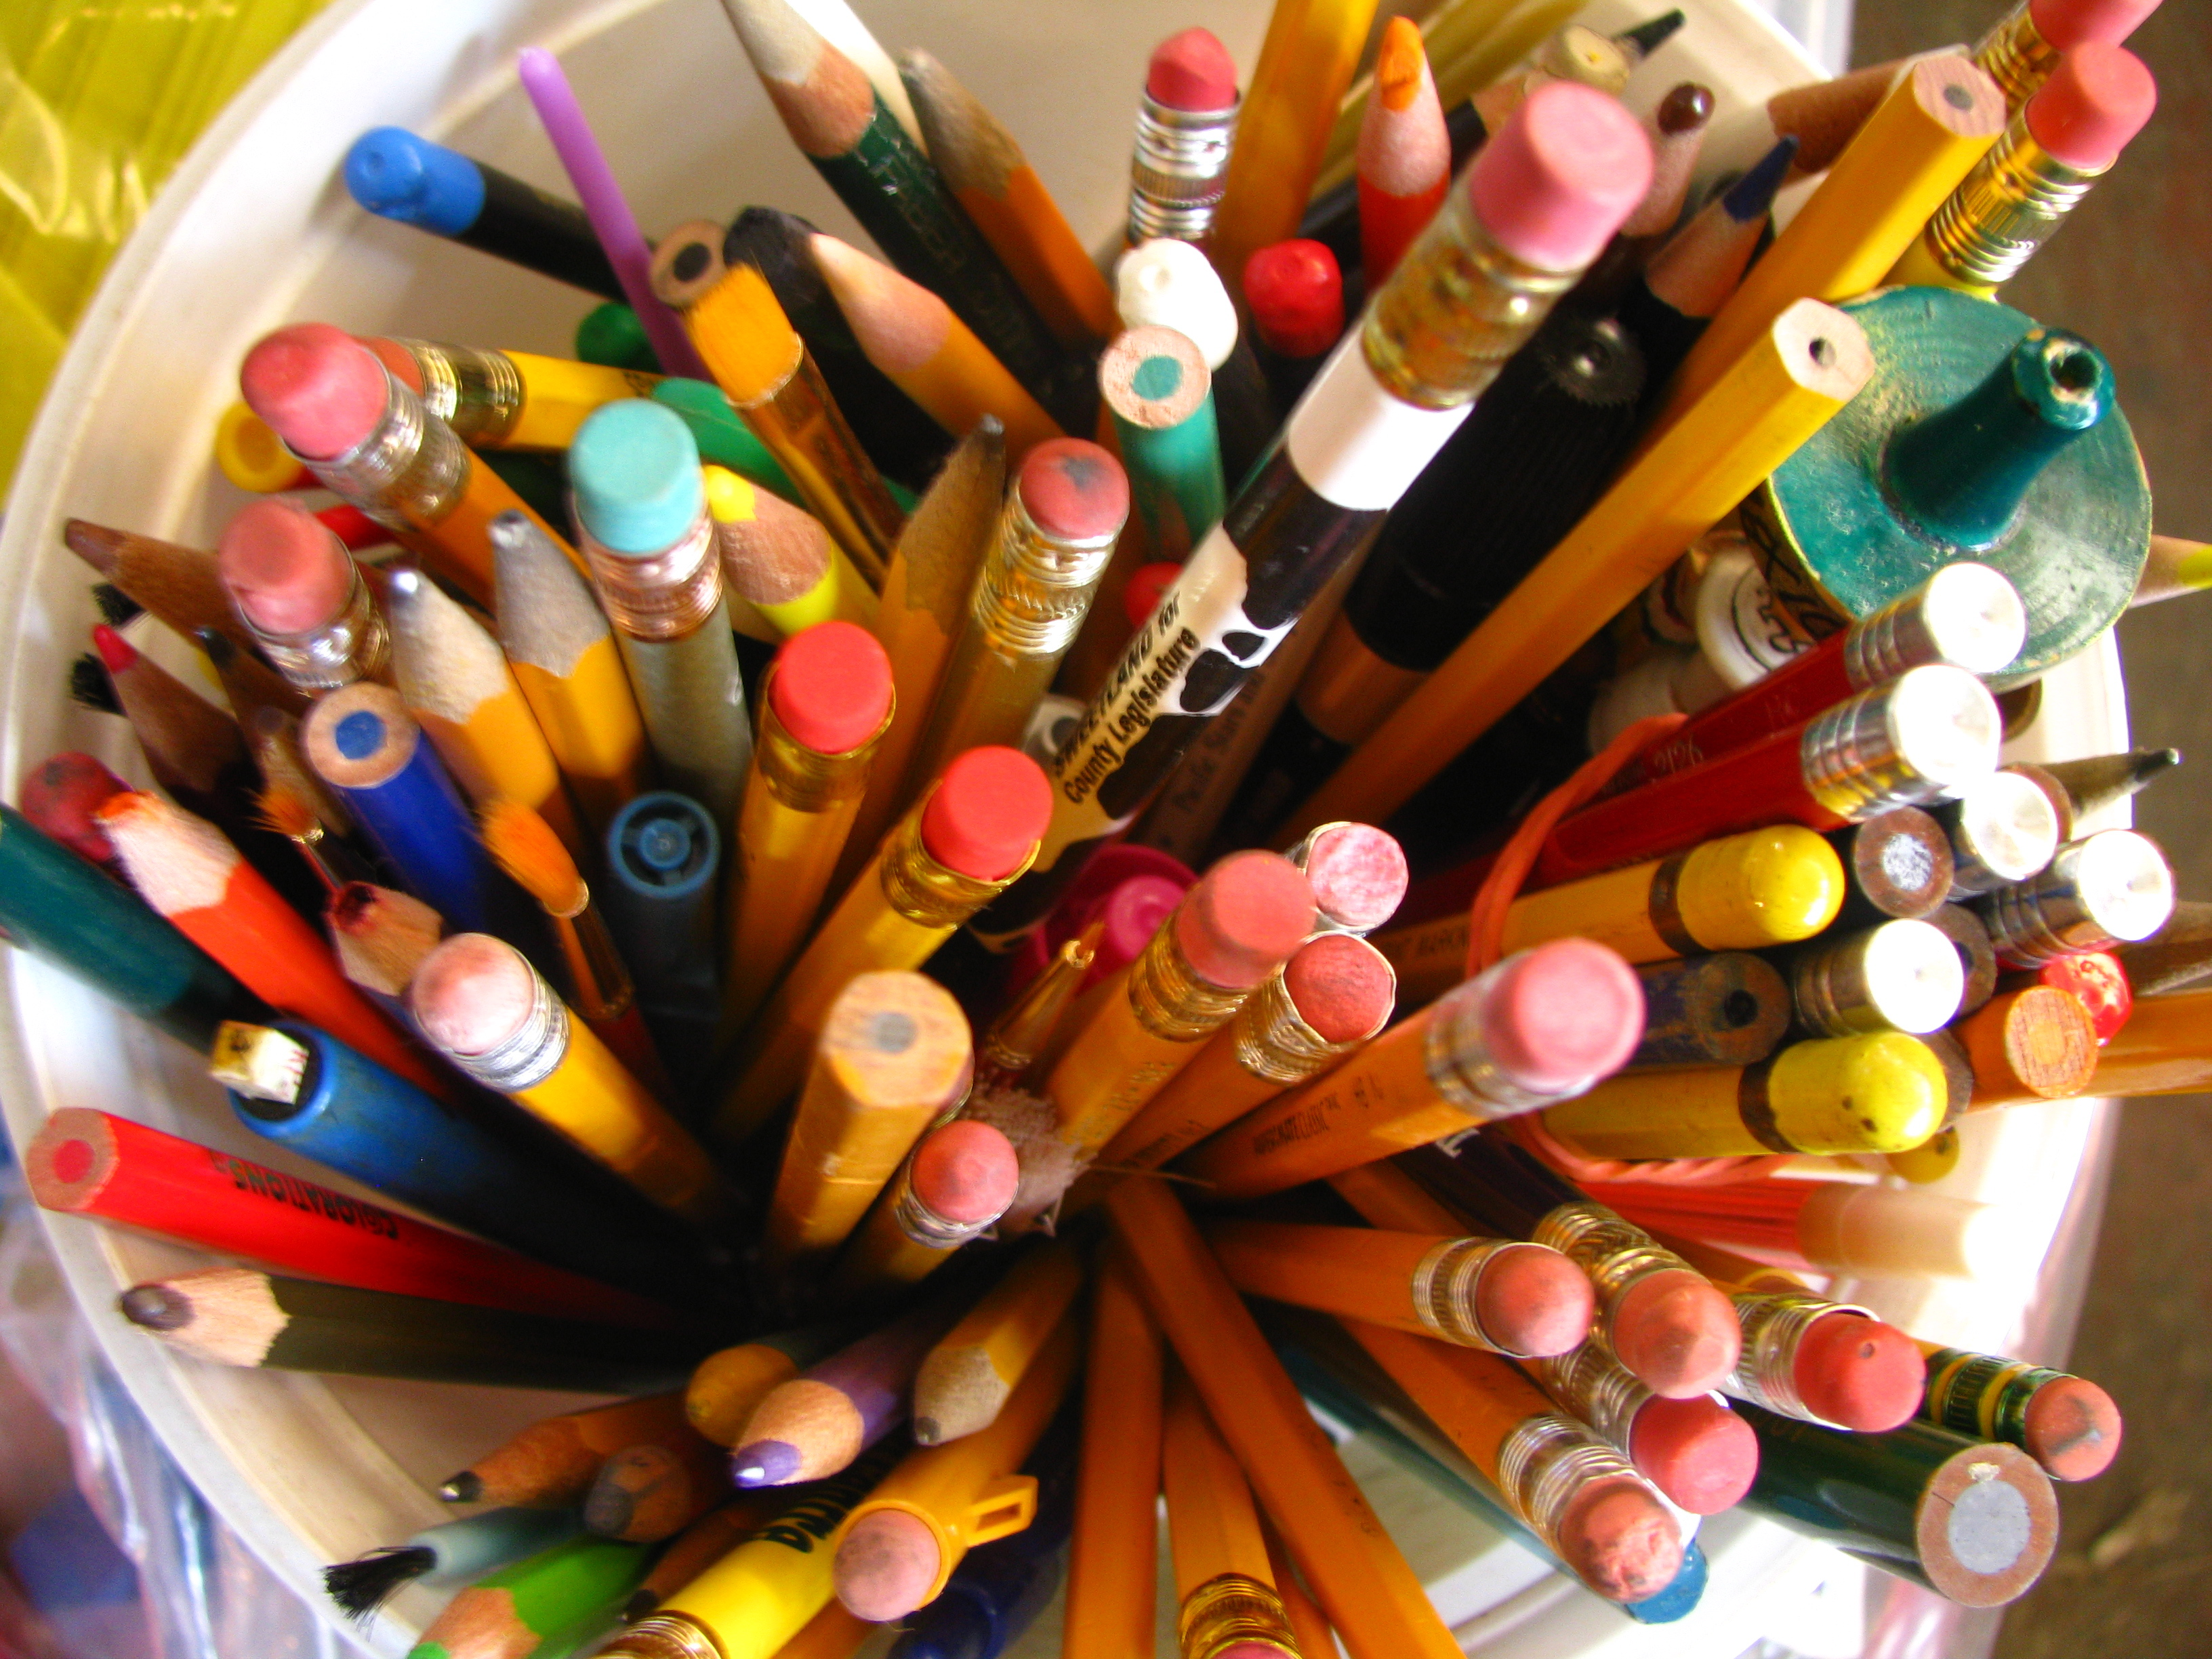 Shop for Art & Craft Supplies at PCCR